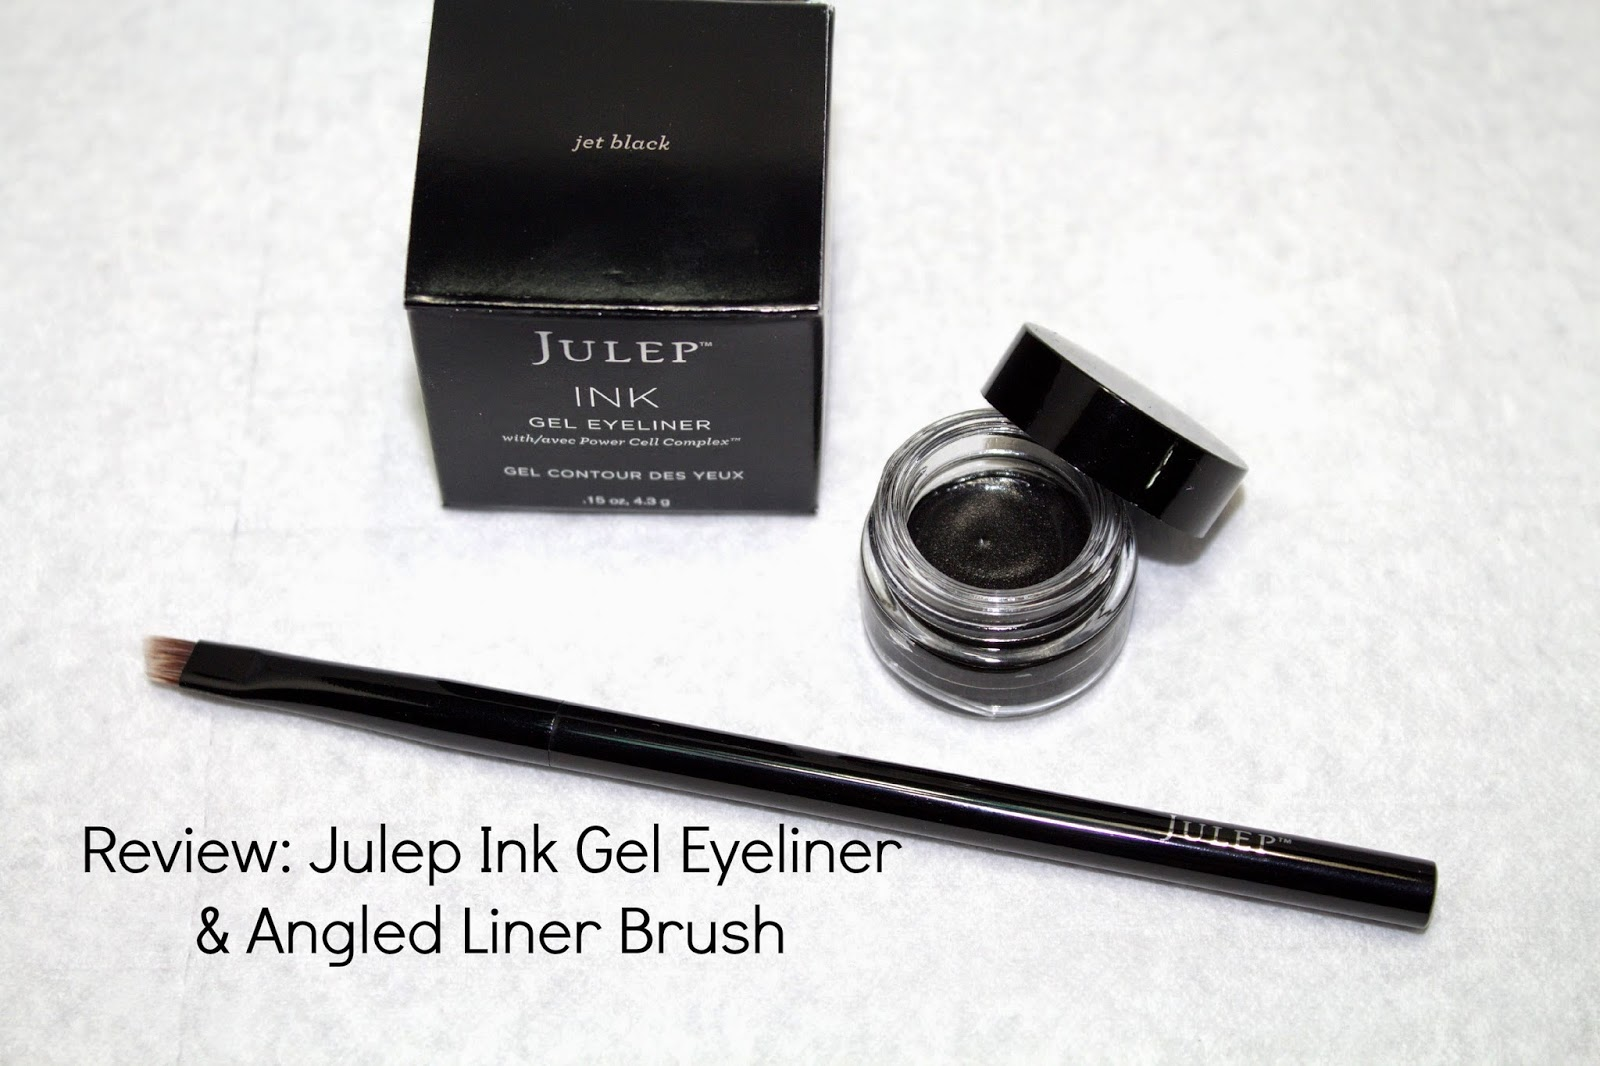 Julep Ink gel eyeliner, Julep angled liner brush, review, @girlythingsby_e